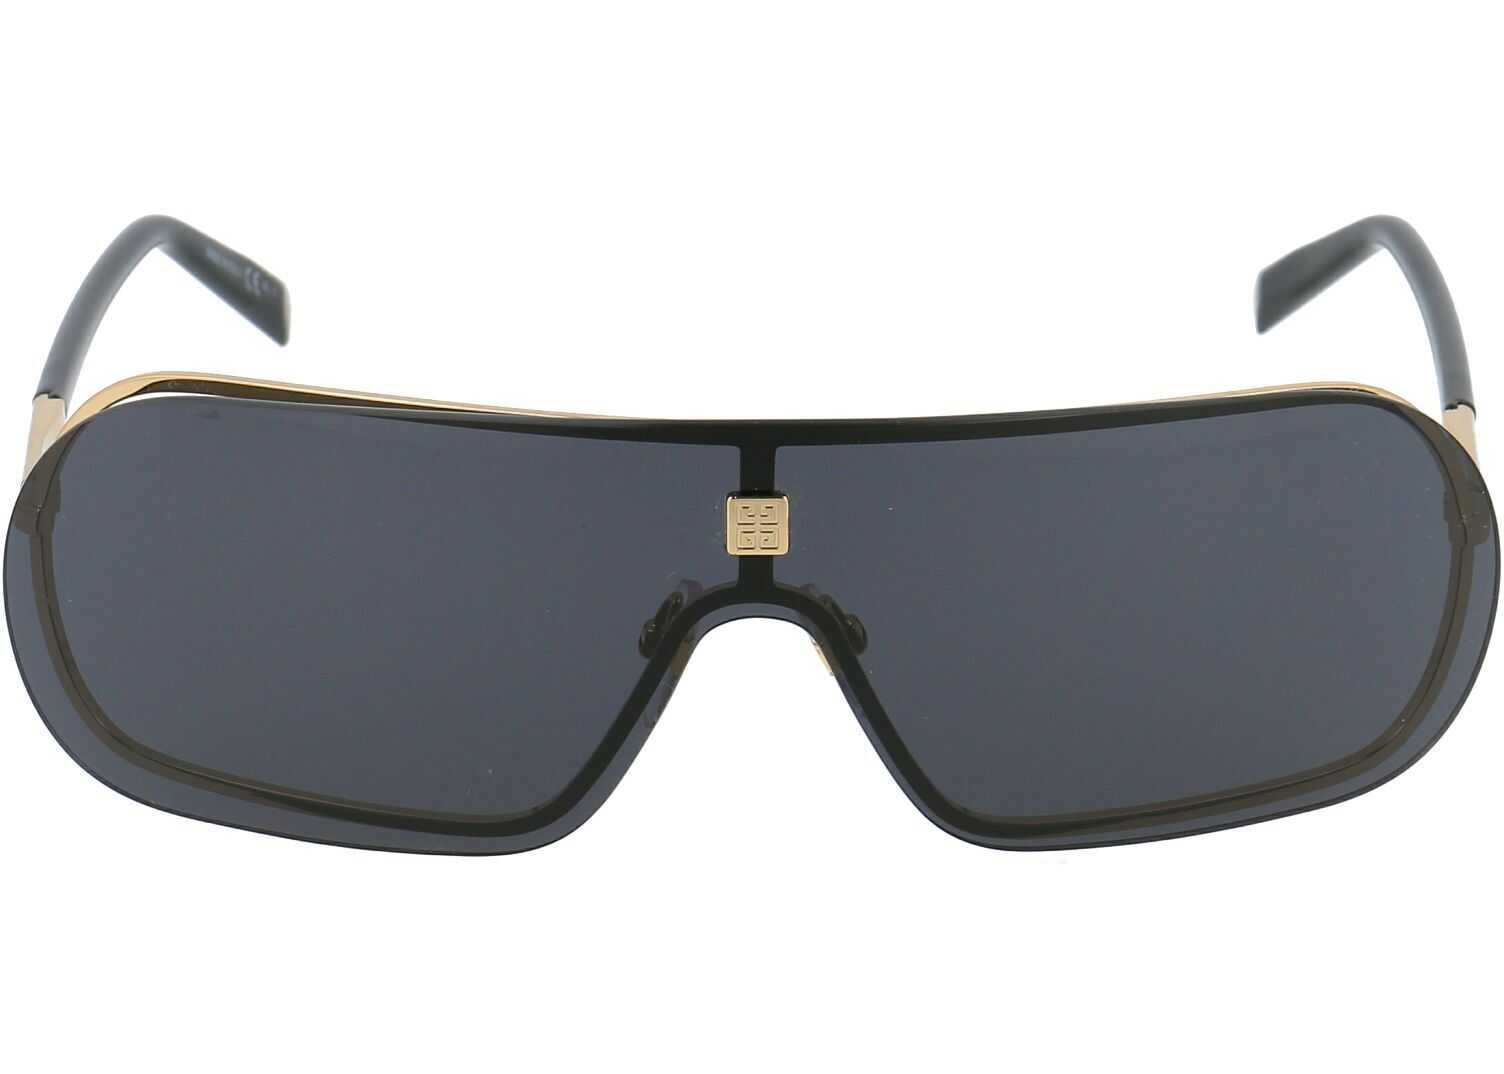 Givenchy Metal Sunglasses BLACK